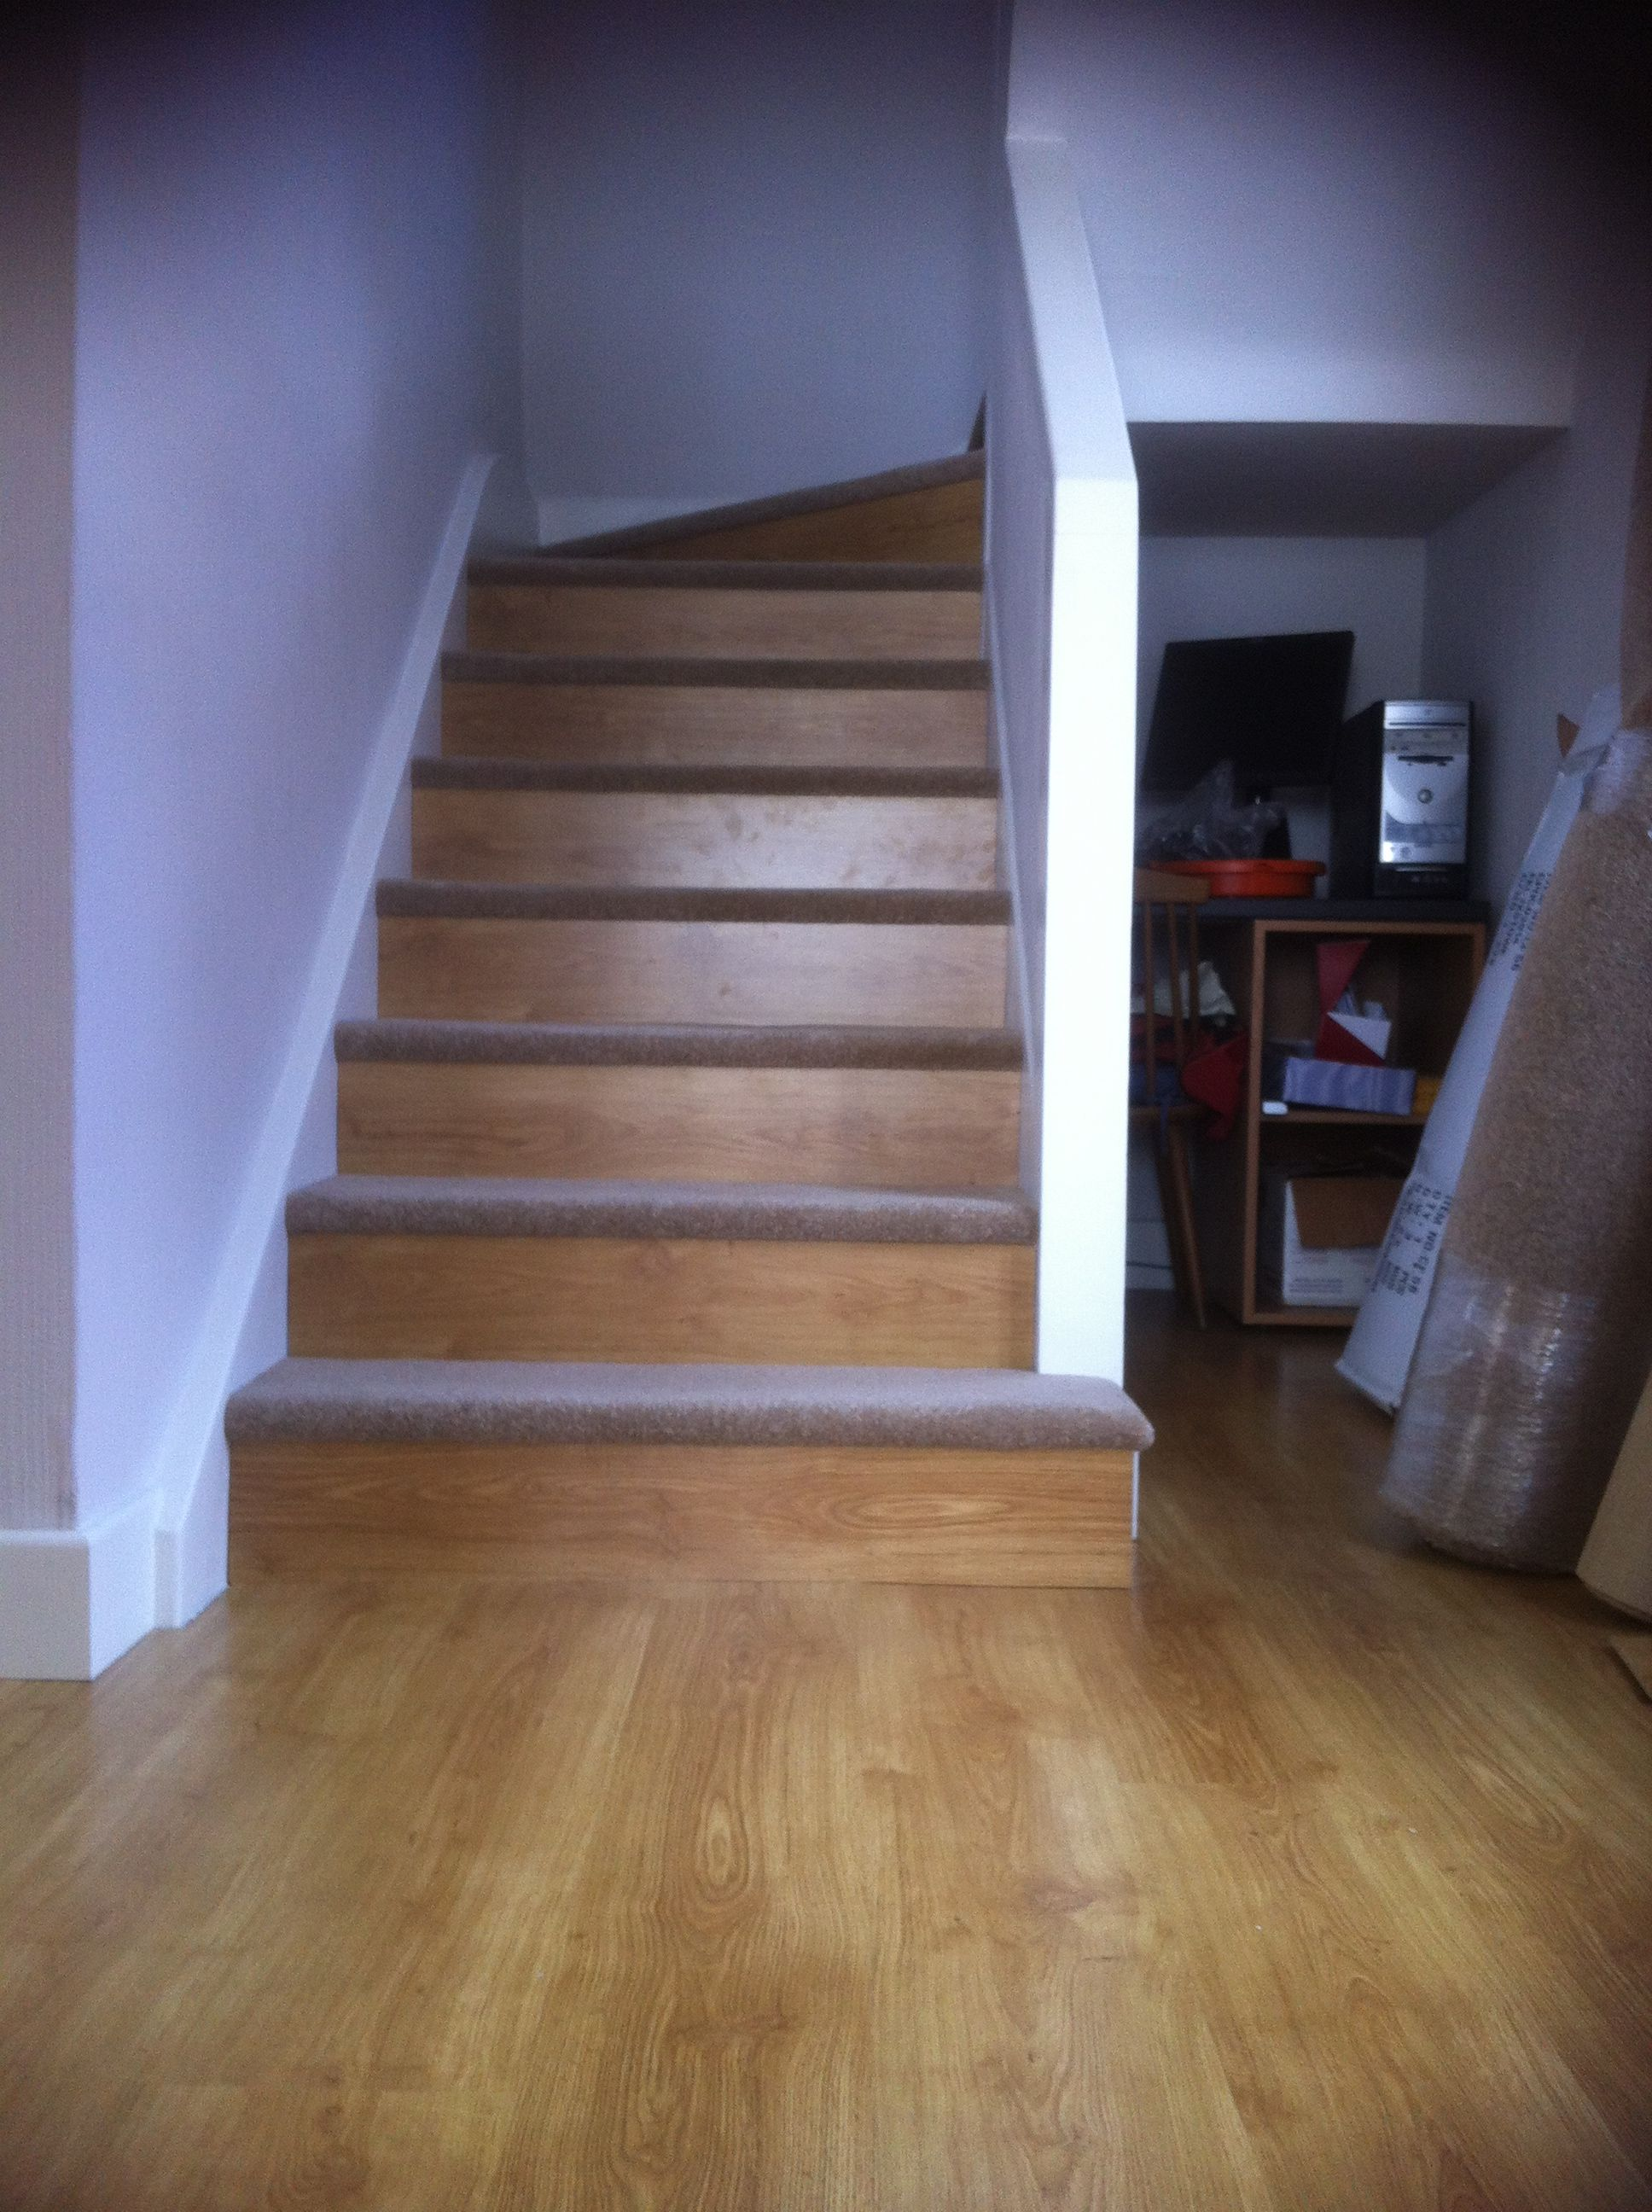 Our diy staircase using leftover laminate flooring on the risers our diy staircase using leftover laminate flooring on the risers carpet from freecycle on the solutioingenieria Images